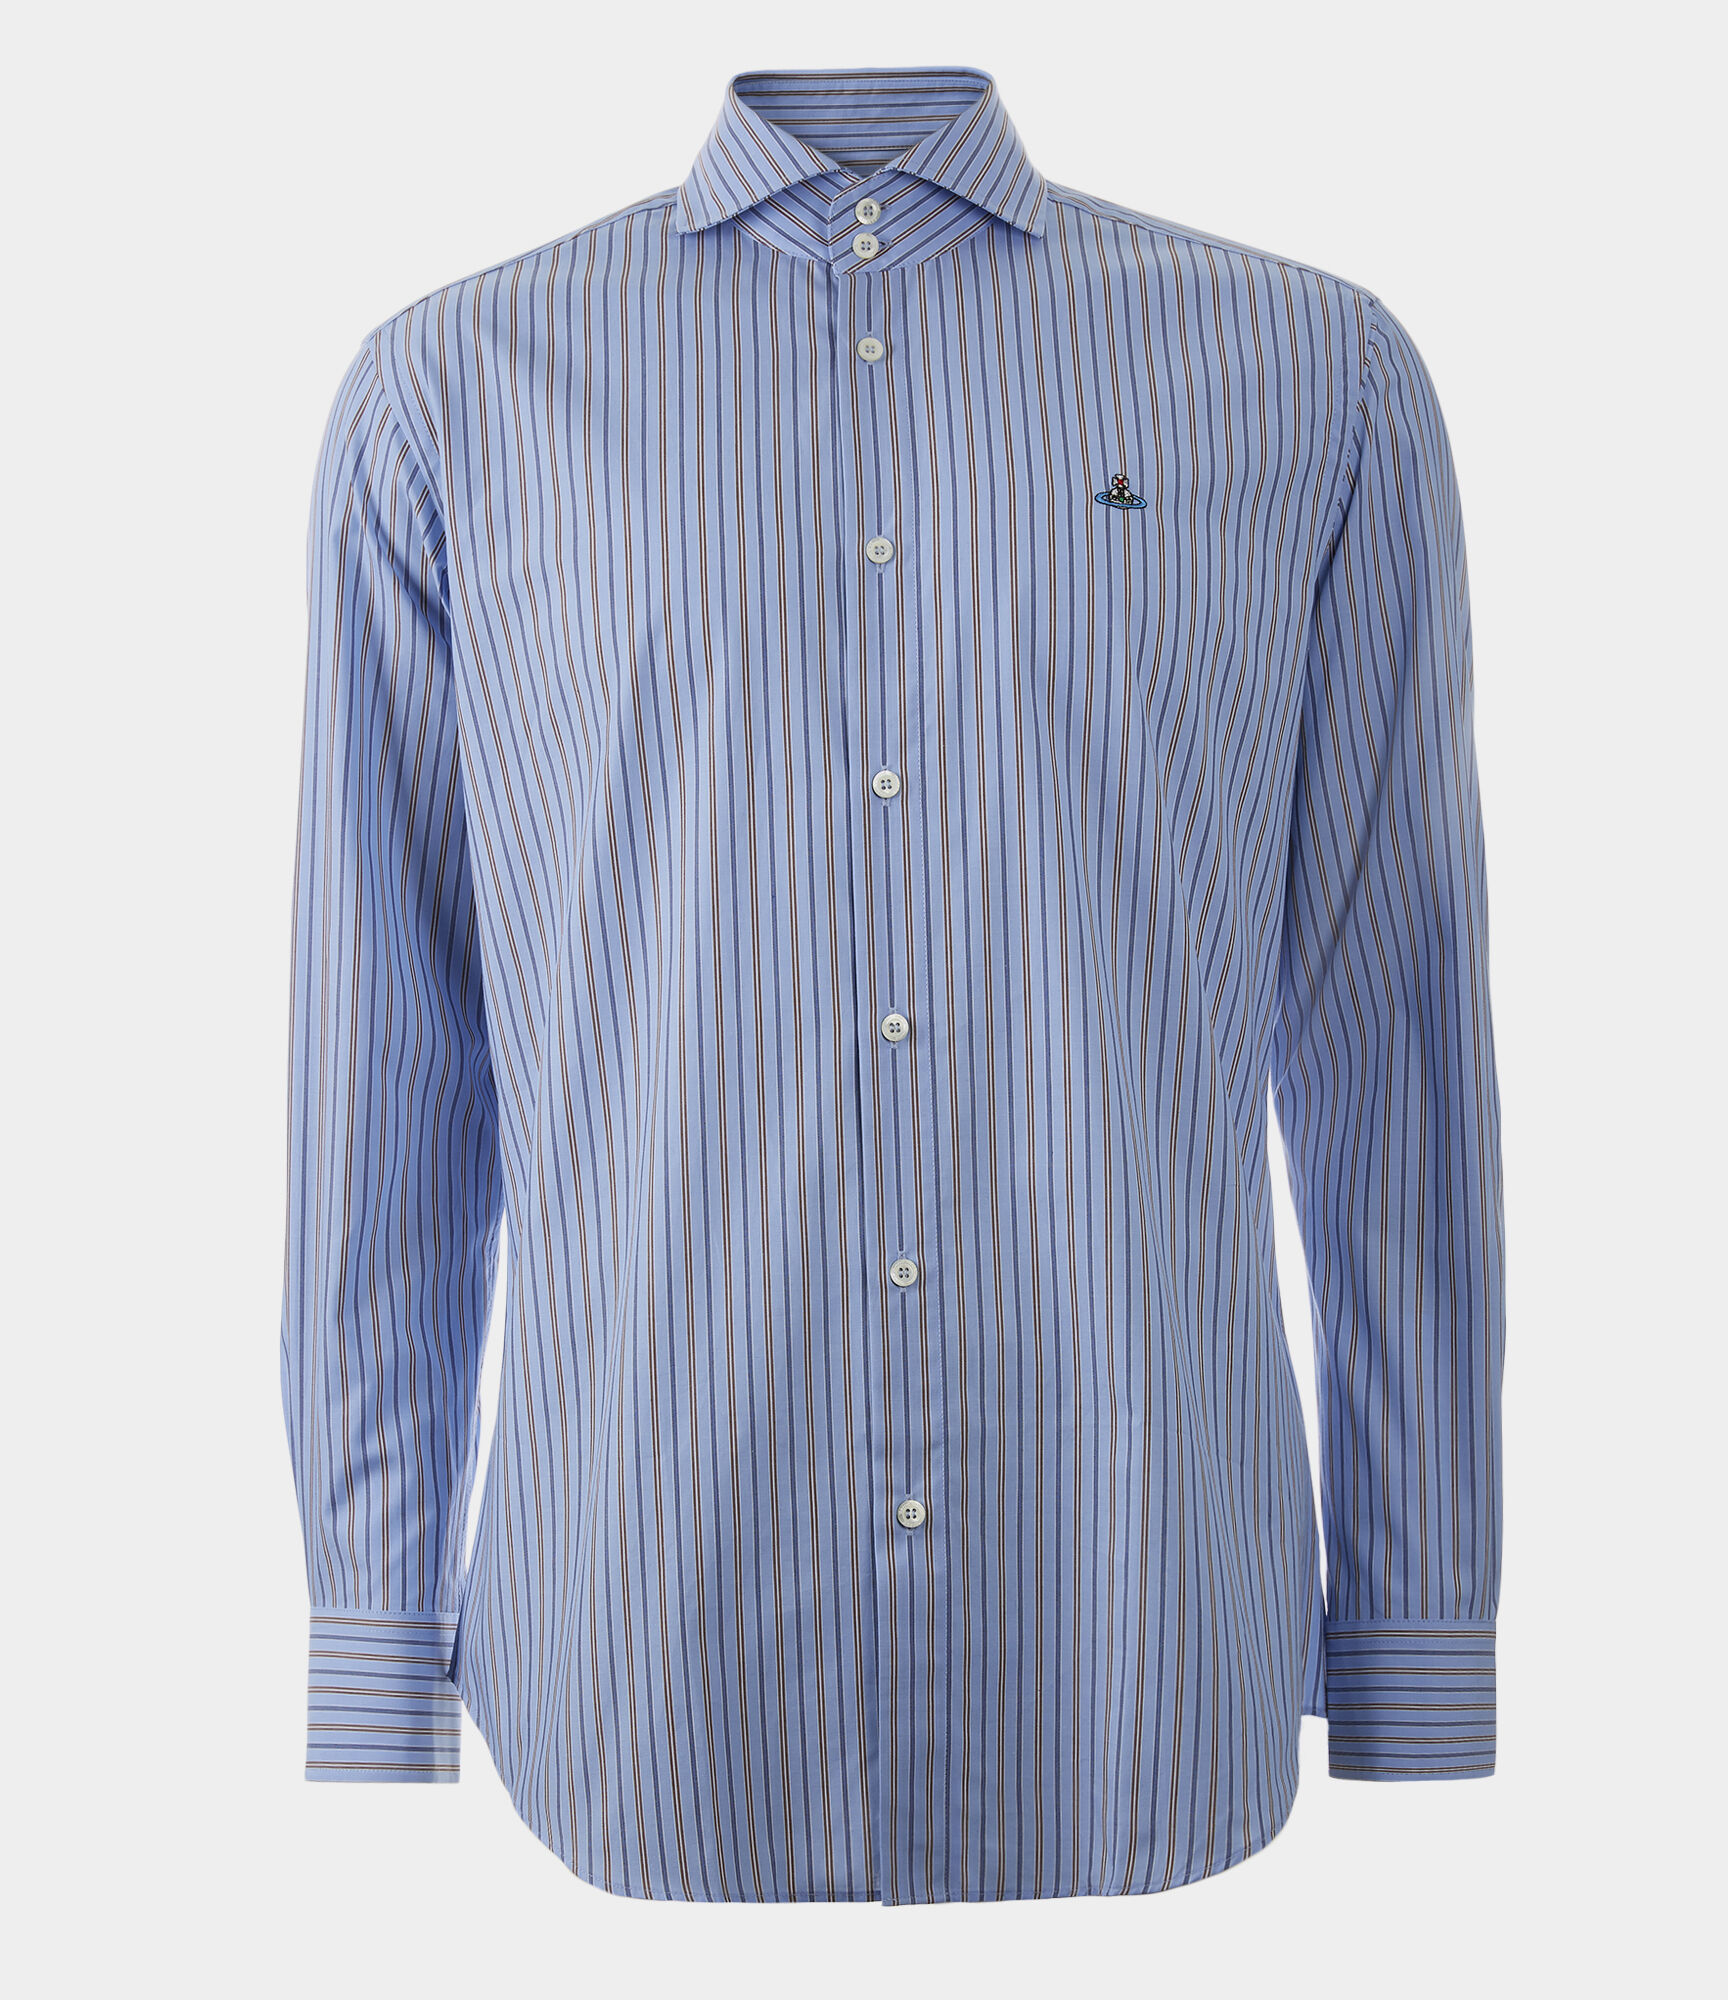 VIVIENNE WESTWOOD Two Button Cutaway Shirt Light Blue/Brown Stripes